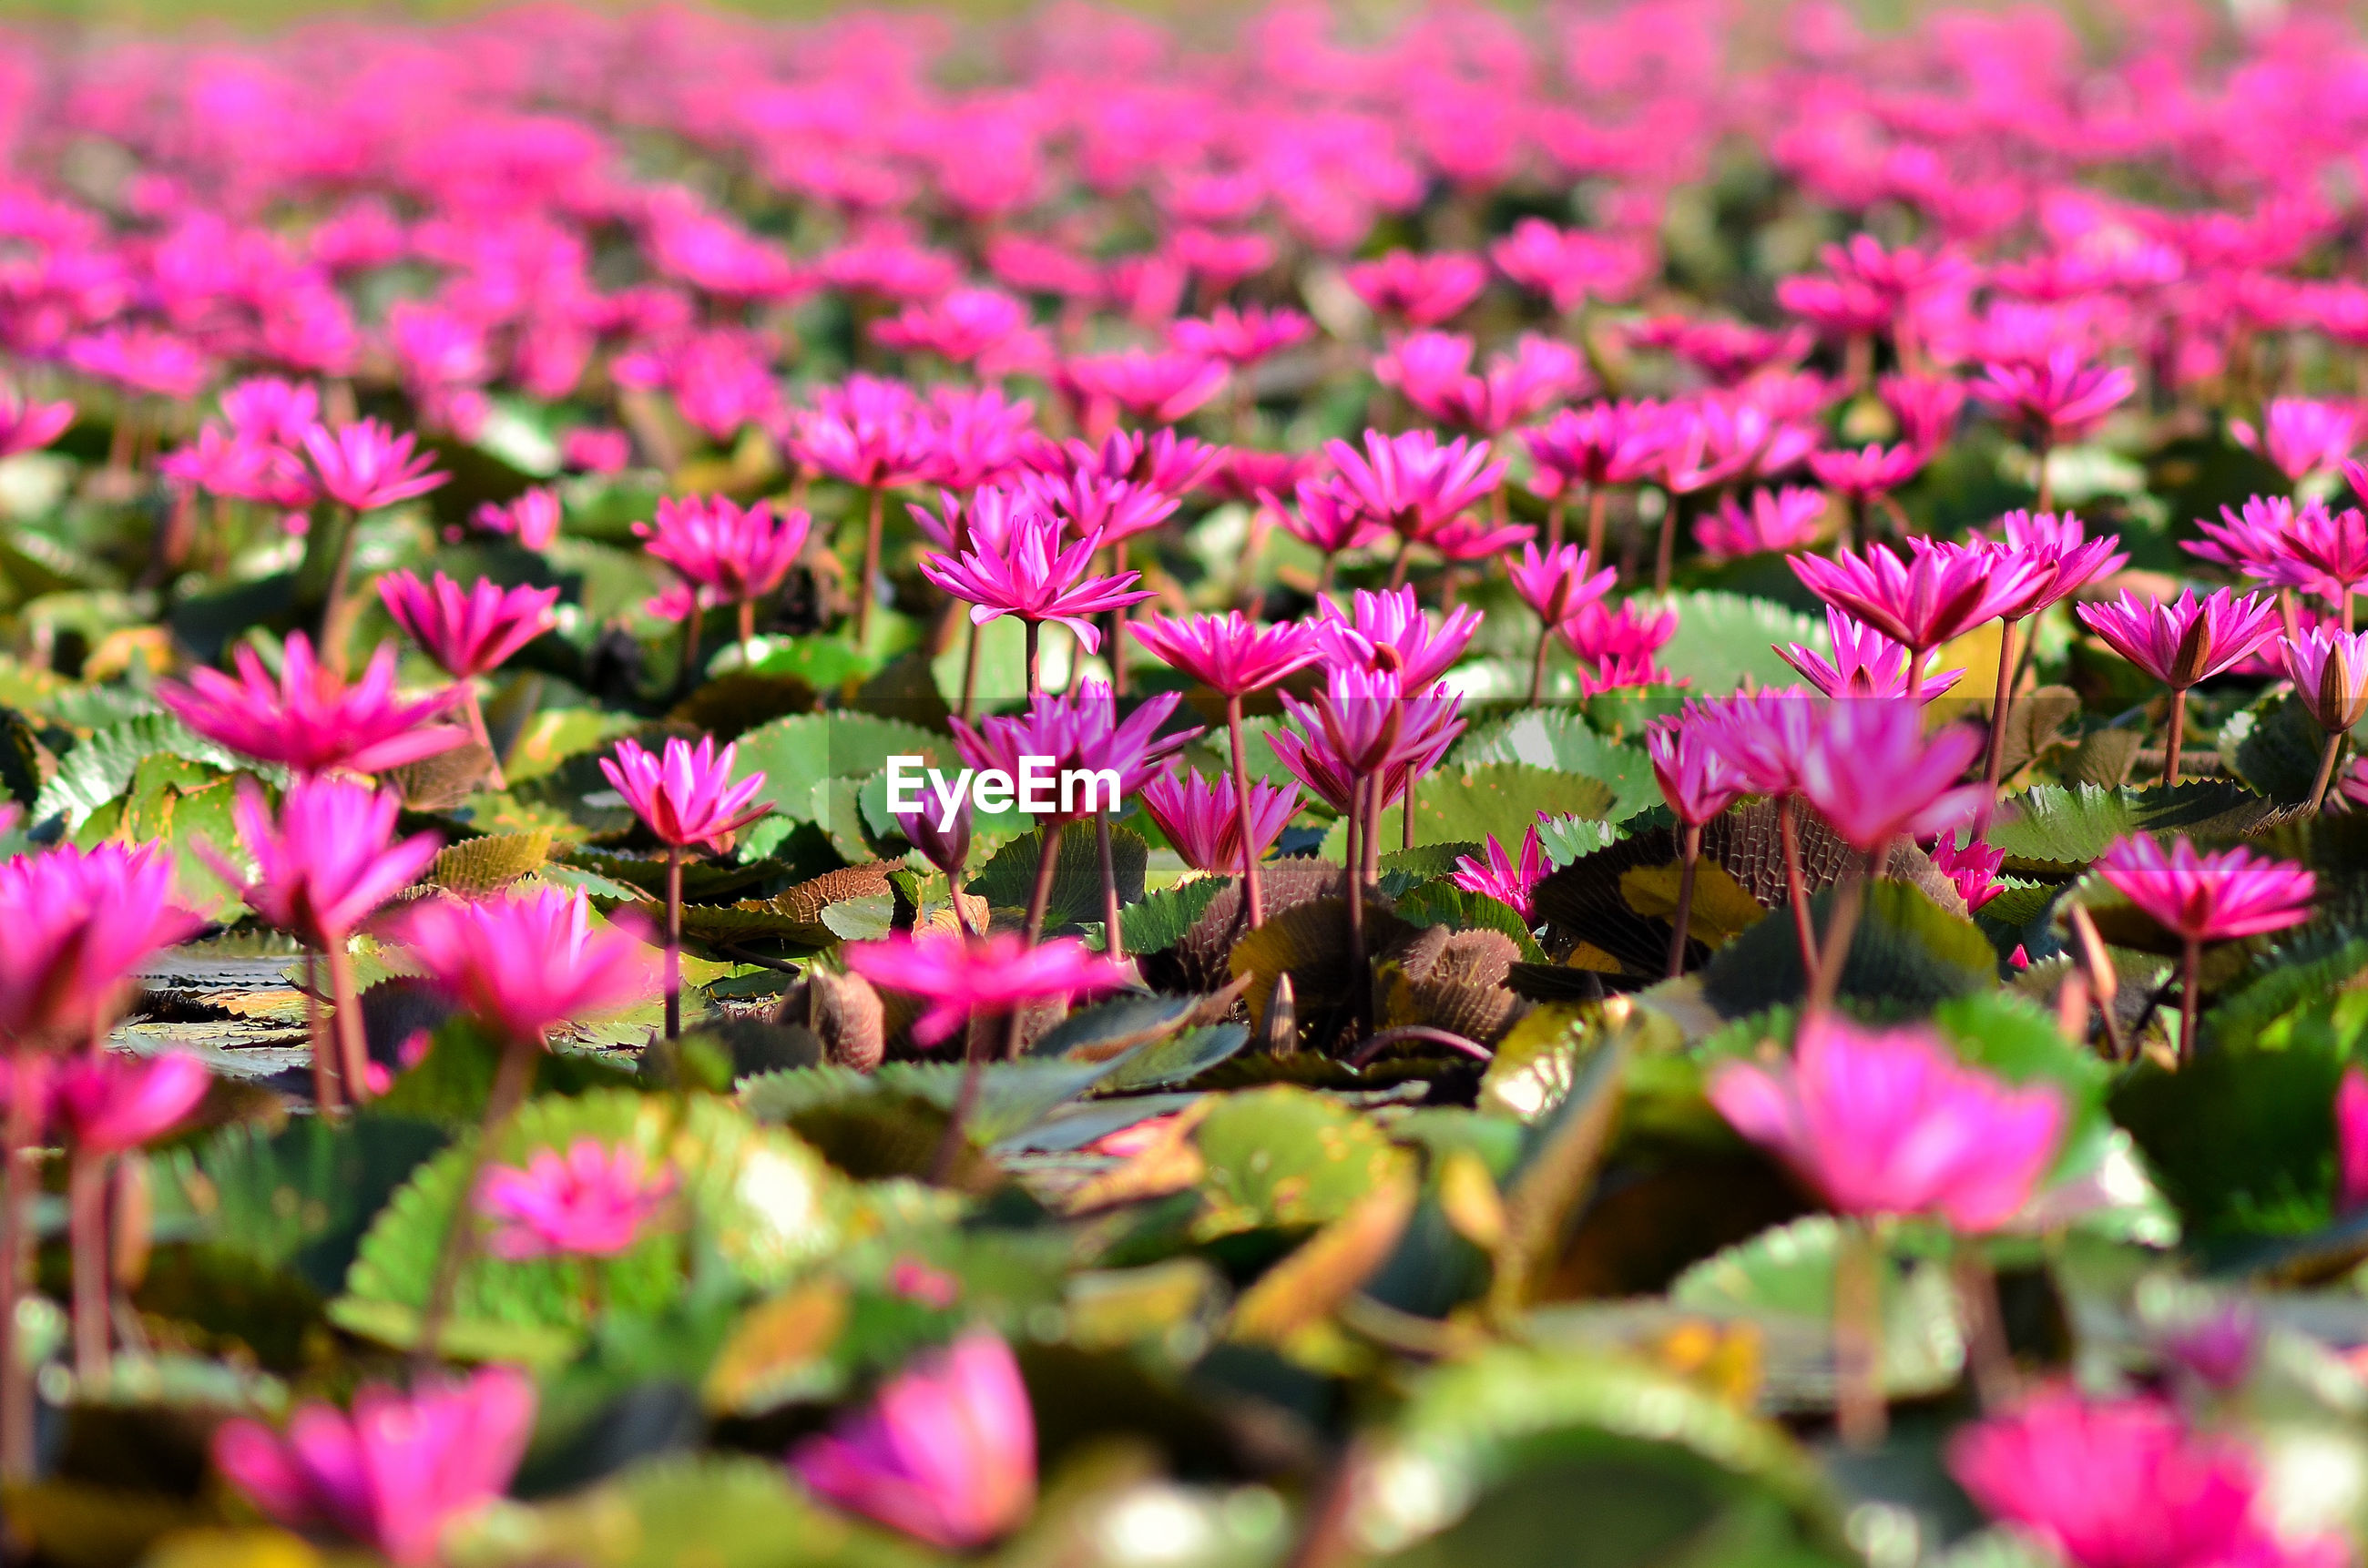 CLOSE-UP OF PINK FLOWERING PLANTS IN SUNLIGHT